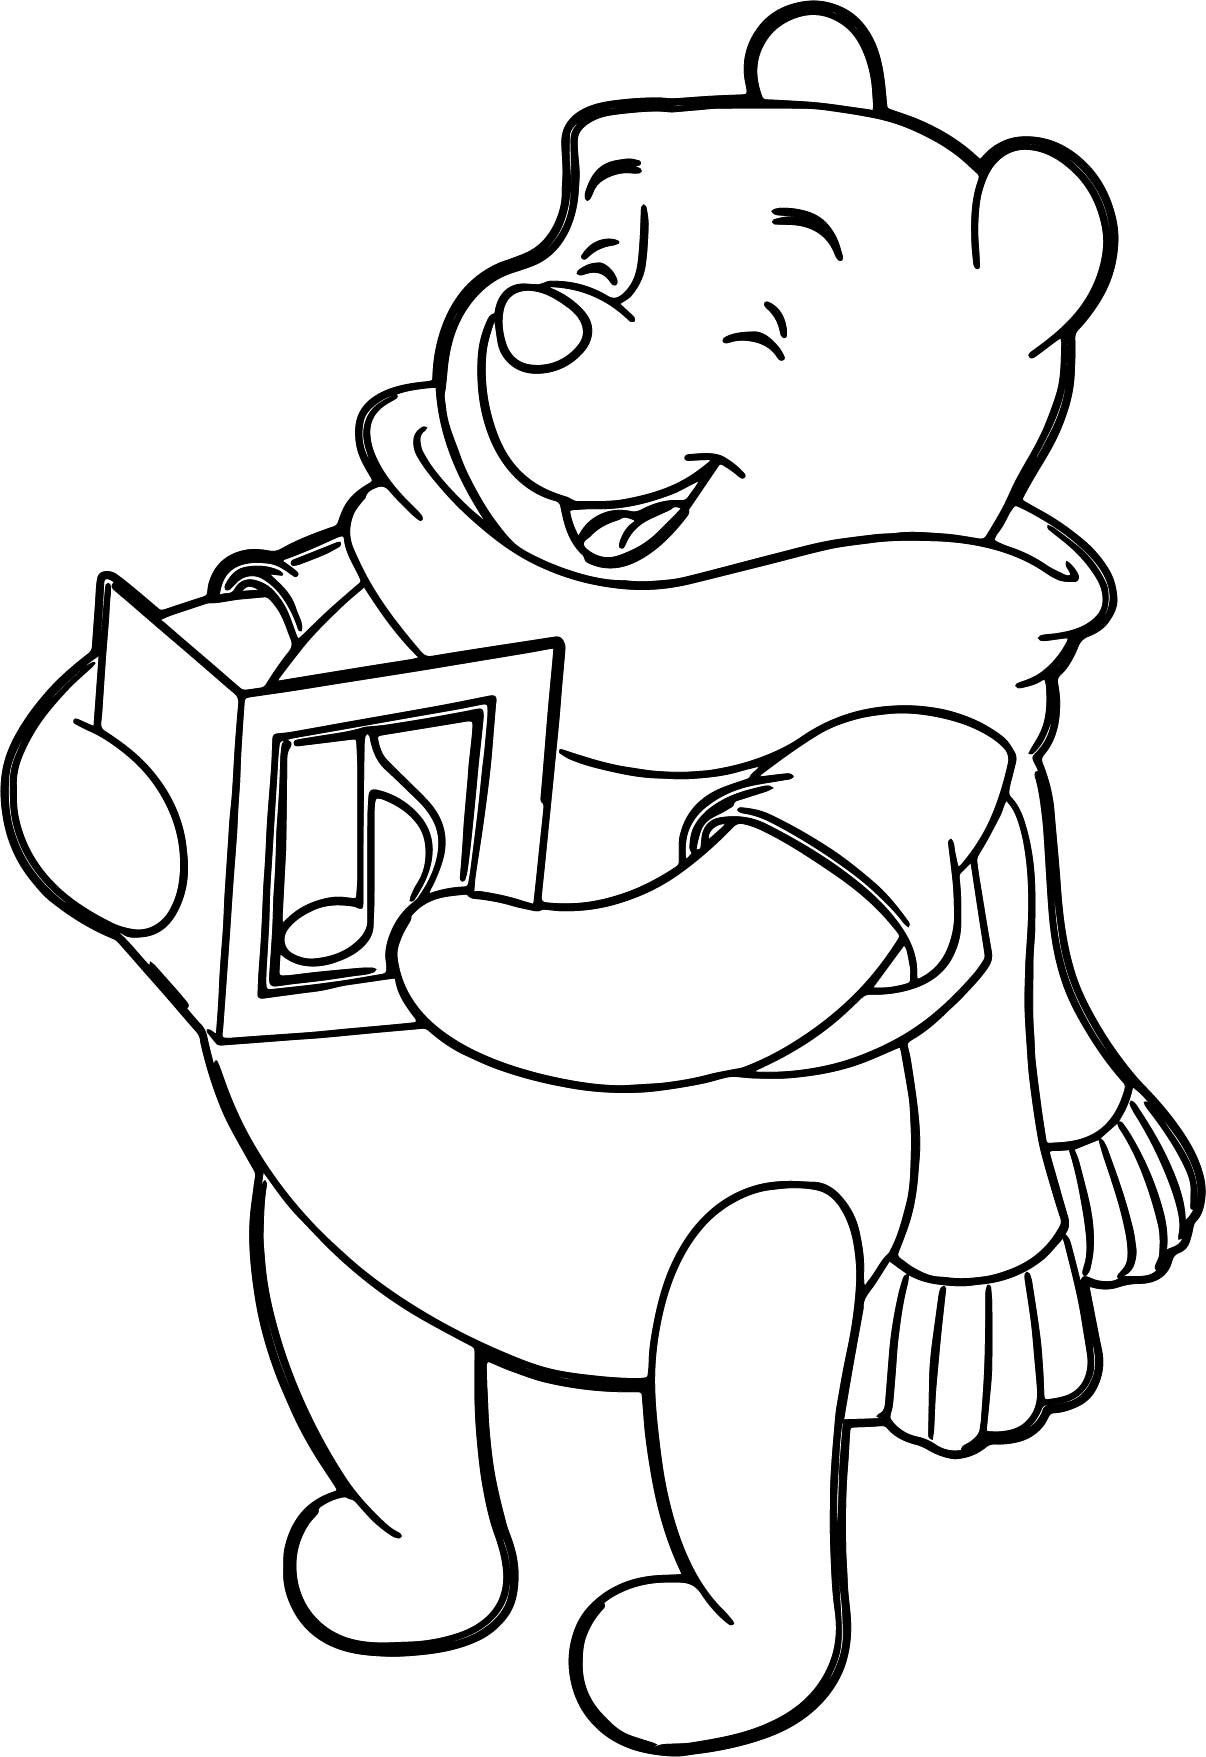 Winnie the Pooh Coloring Pages Cartoon coloring pages